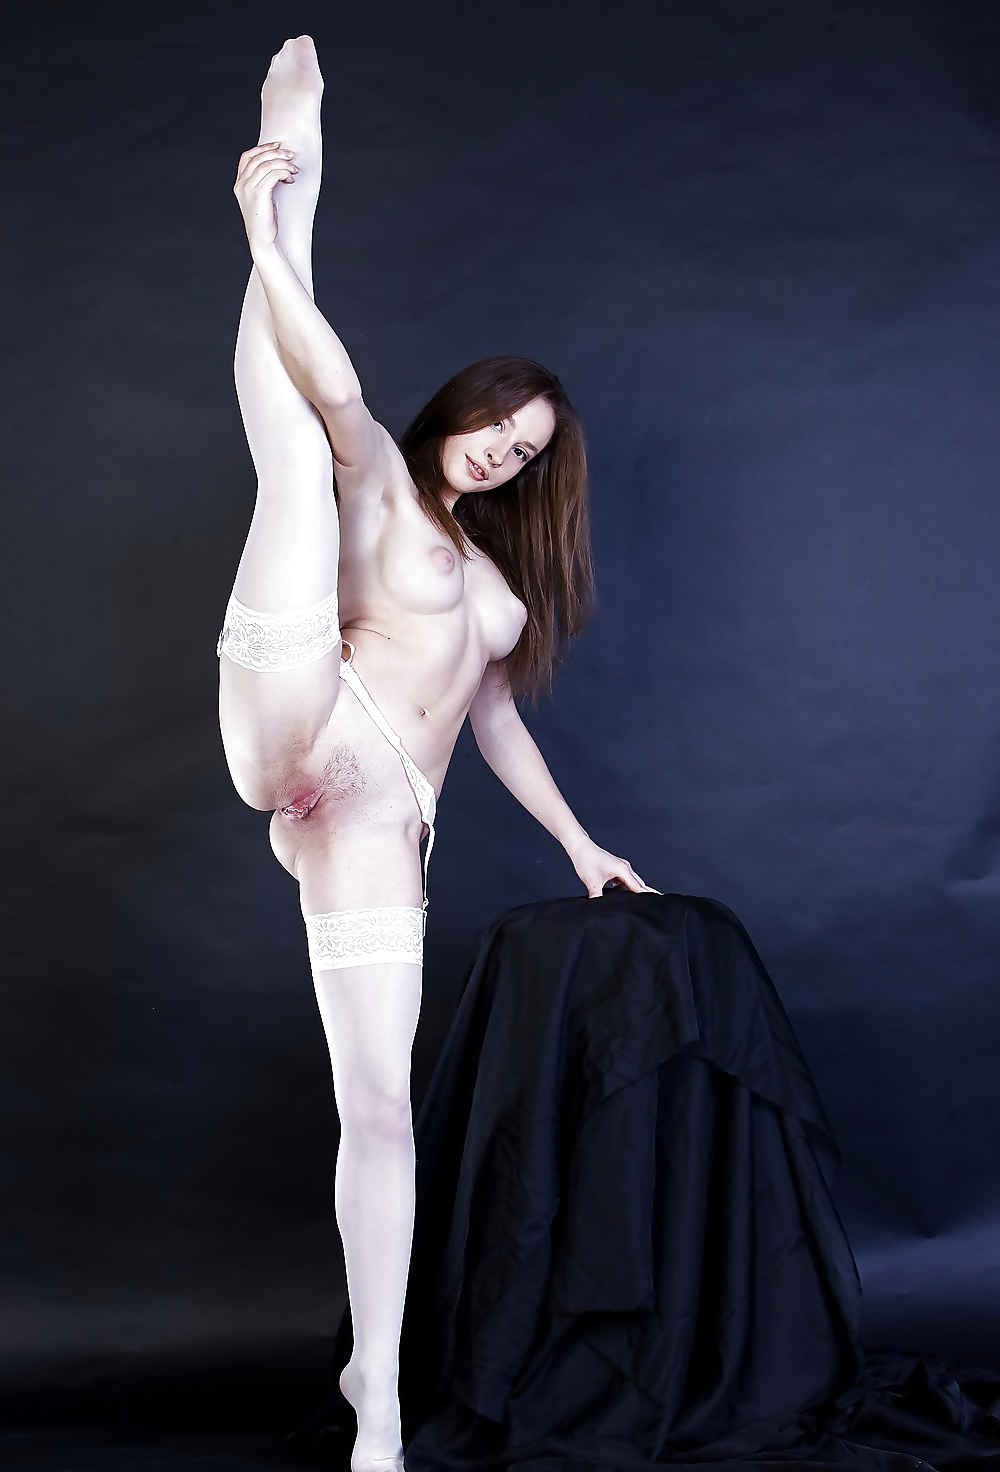 Pussy ballet, photo girls anorexic xxx